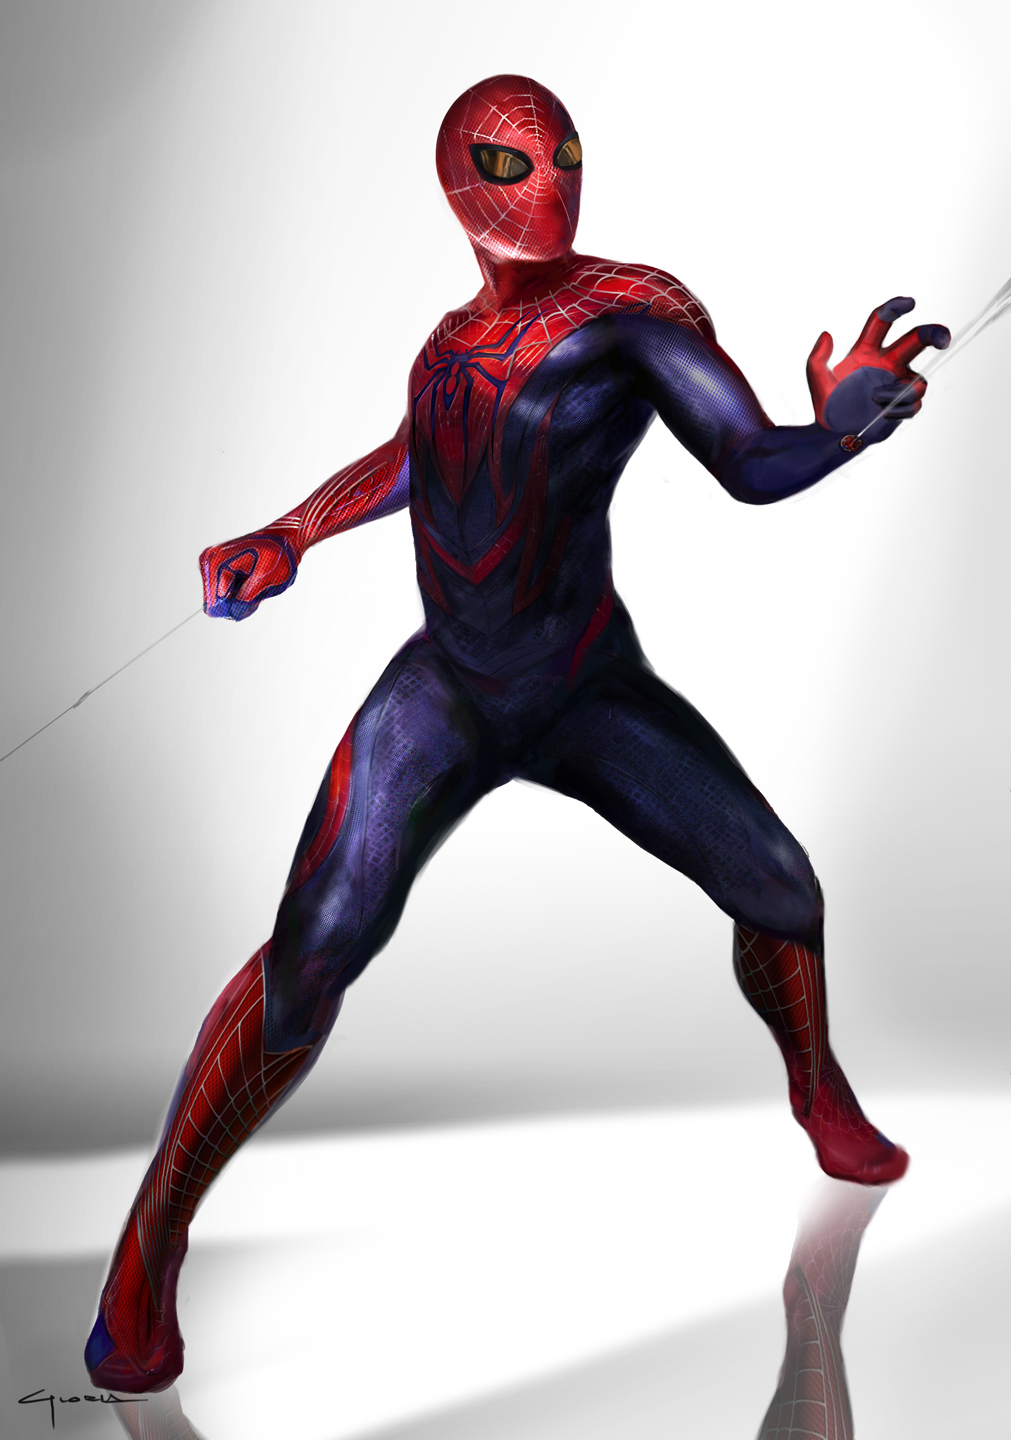 Alternate Spider-Man Suit Designs & Concept Art!star trek ...